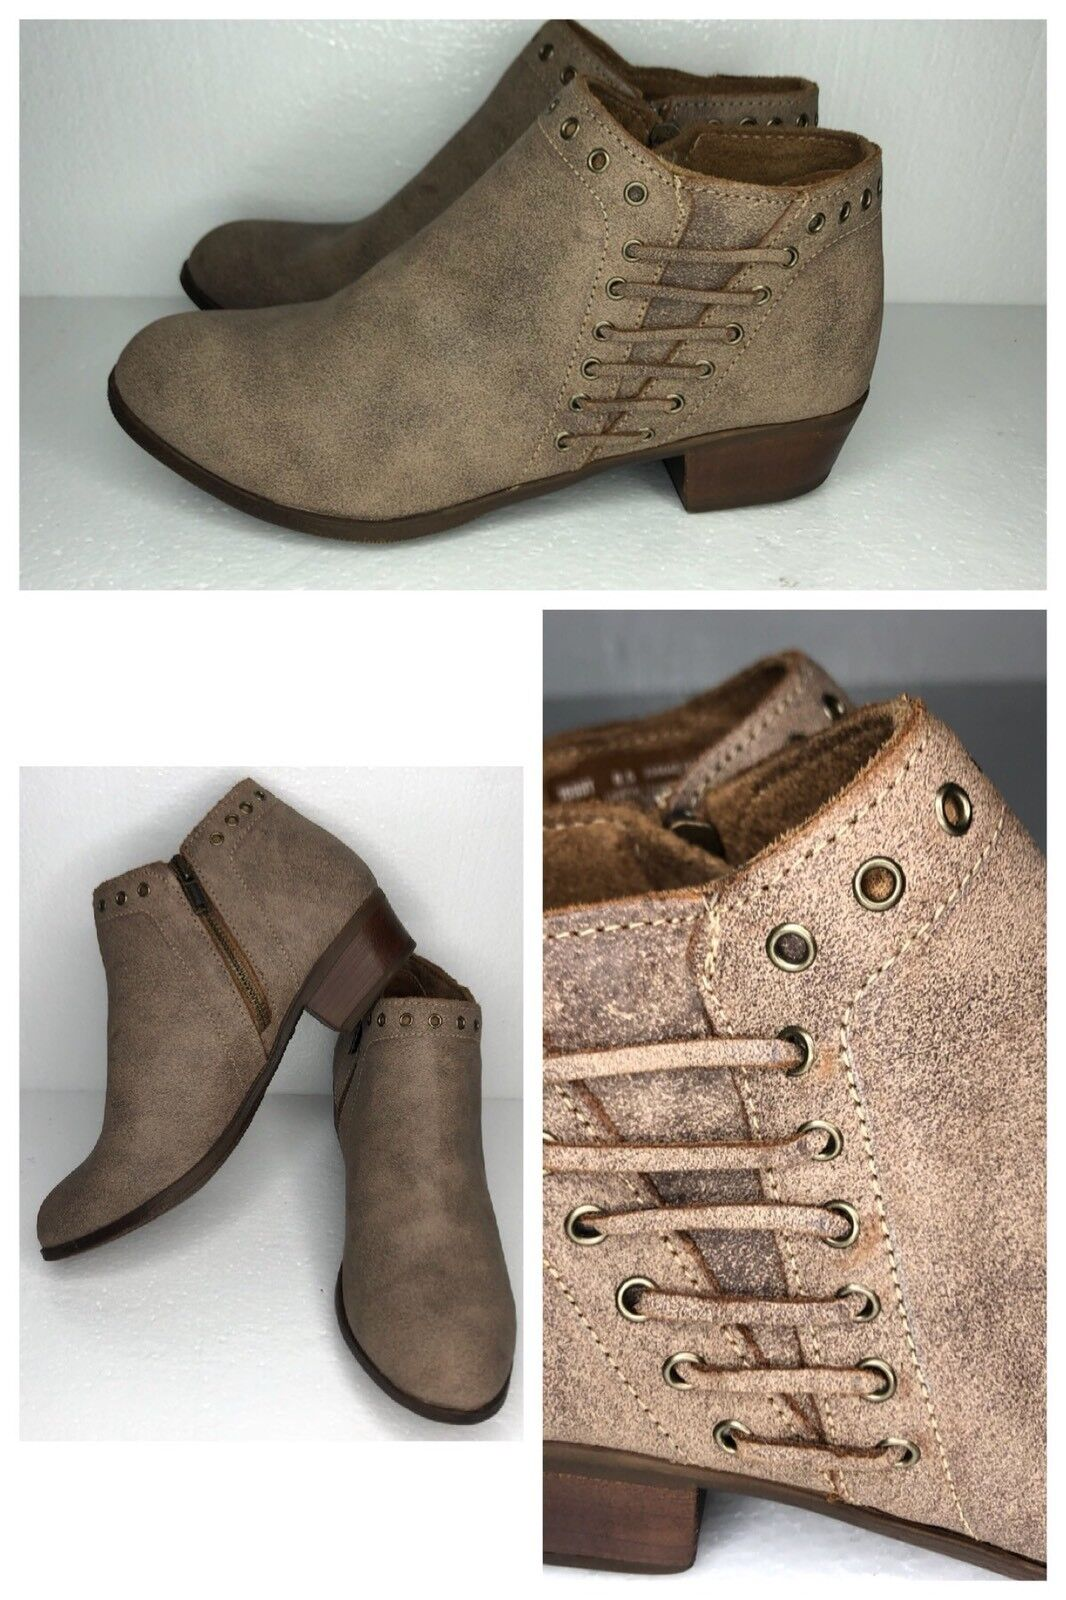 Minnetonka Women's Brown Leather Low Mid Cut Boots Size 8.5 1533T - Never Worn